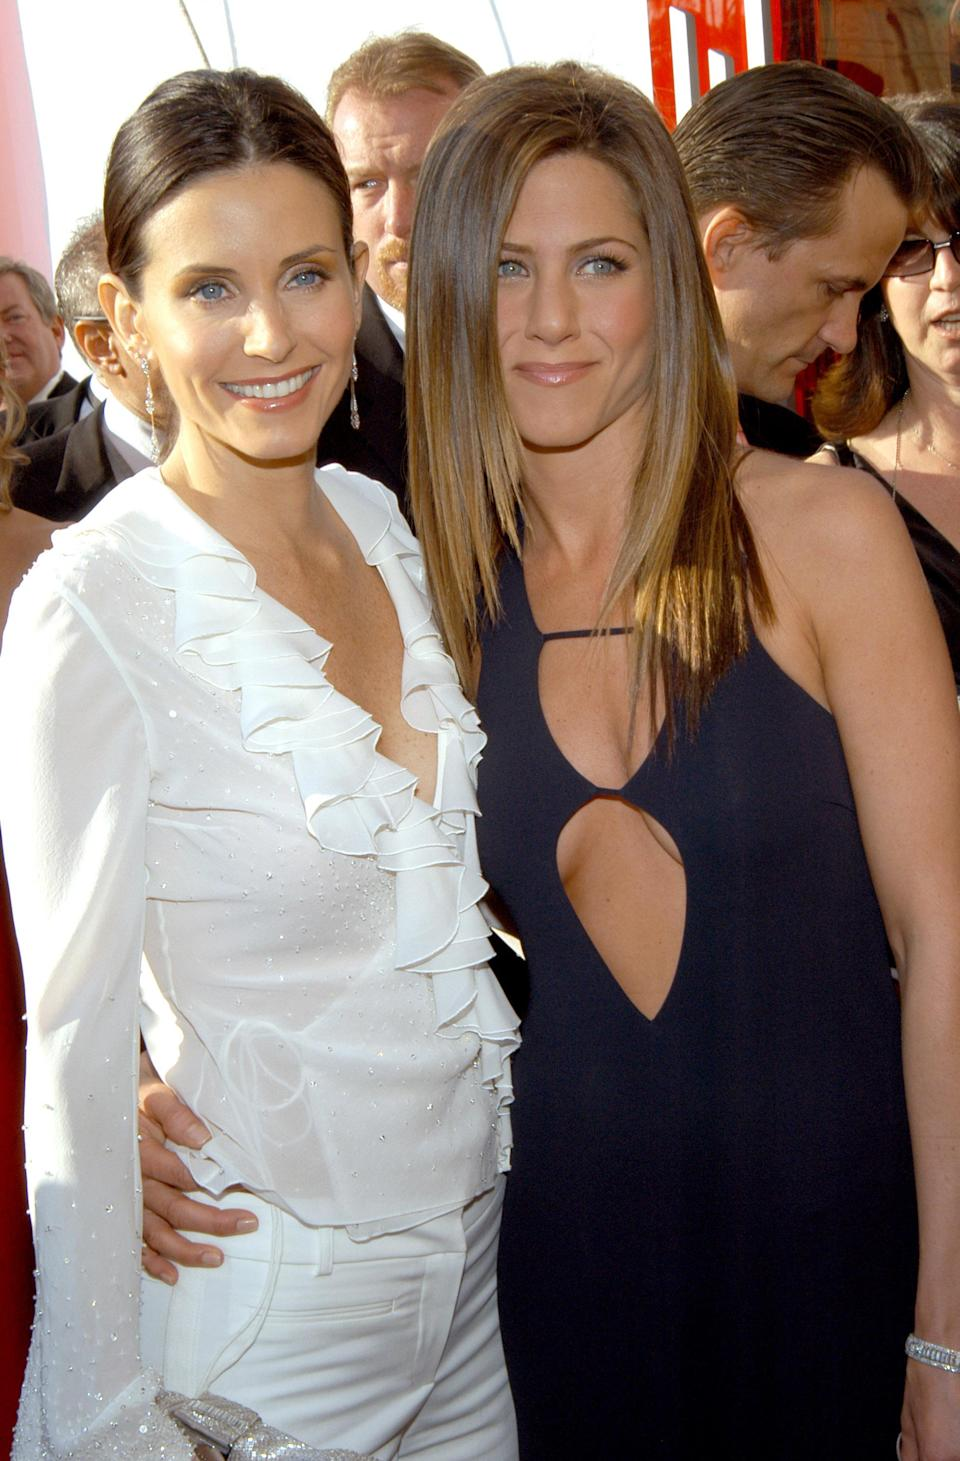 <p>The 2003 Screen Actors Guild awards provided a chance for the friends to showcase their sartorial prowess once again. For the occasion, Jennifer wore a keyhole cut-out black dress while Courteney tucked a ruffled shirt into white trousers. <em>[Photo: Getty]</em> </p>